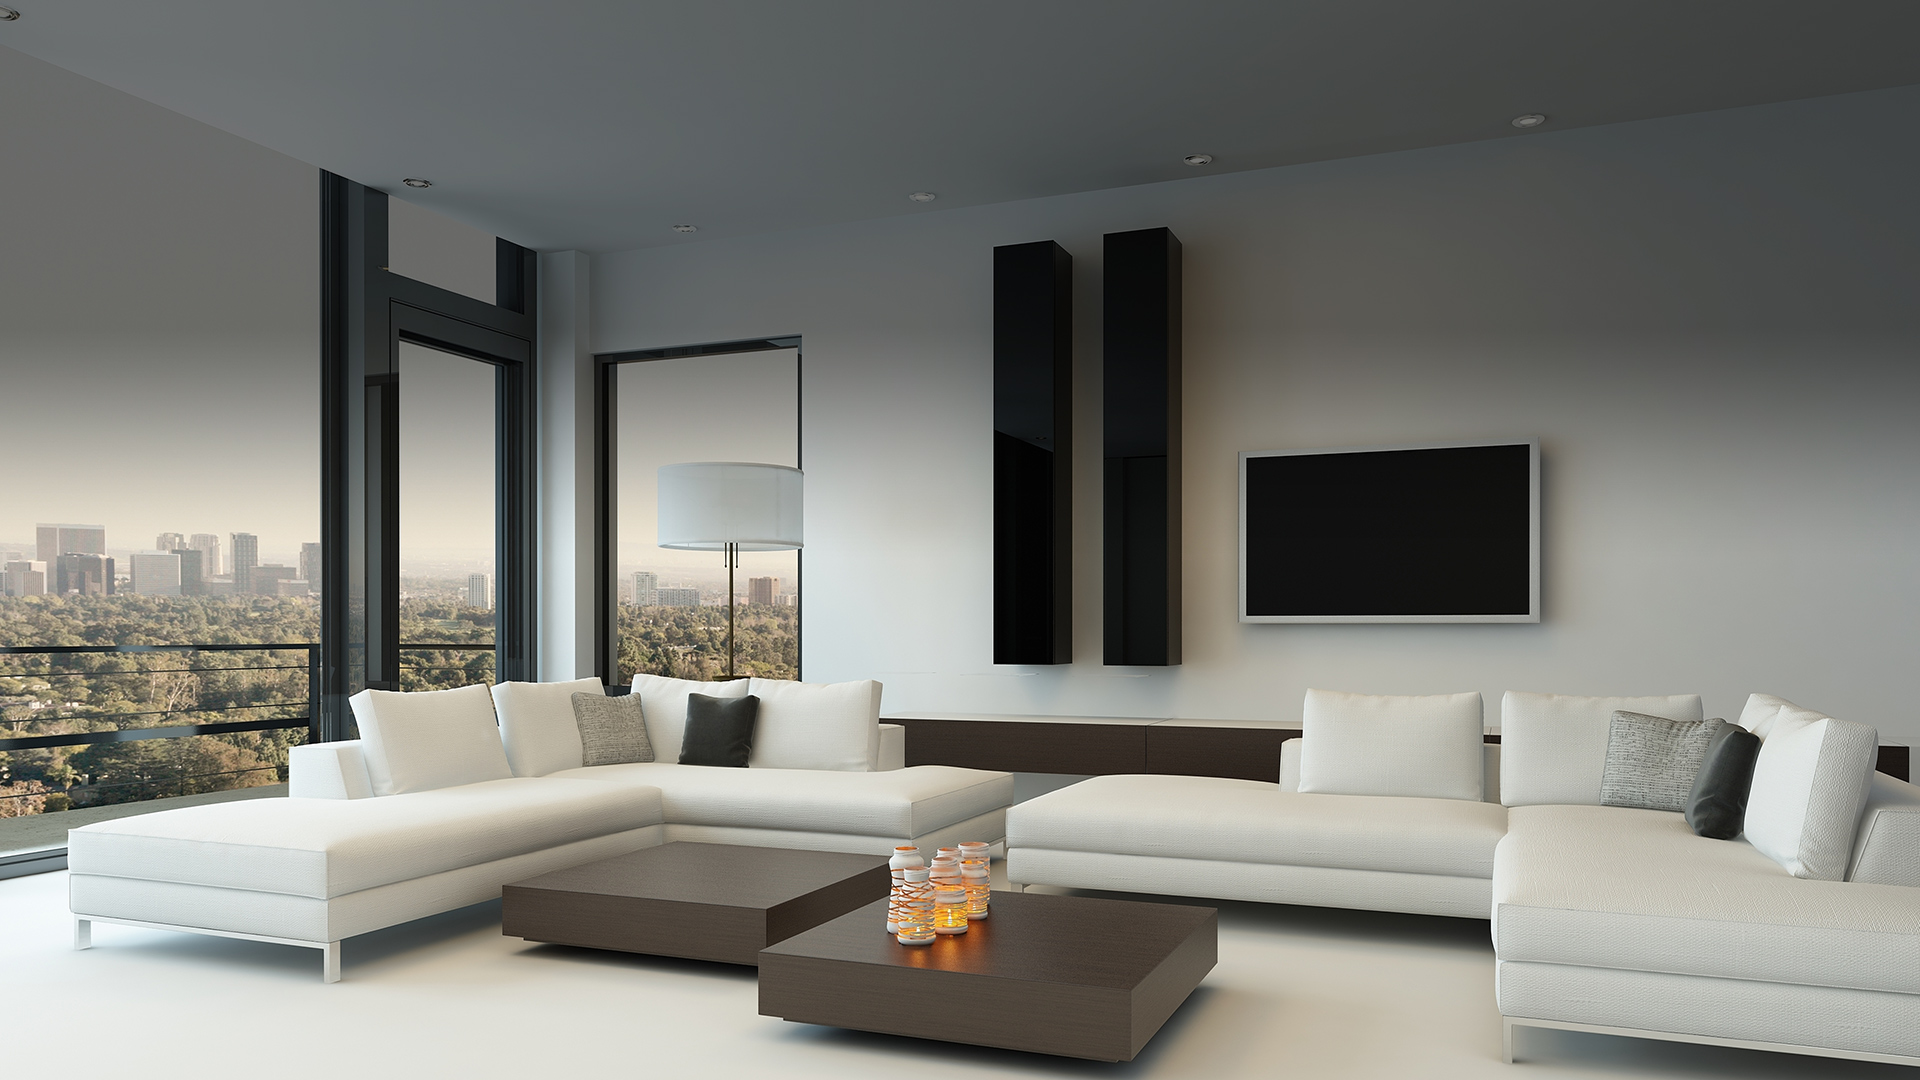 Luxe affordable interior design services in torrance ca for Interior designs services